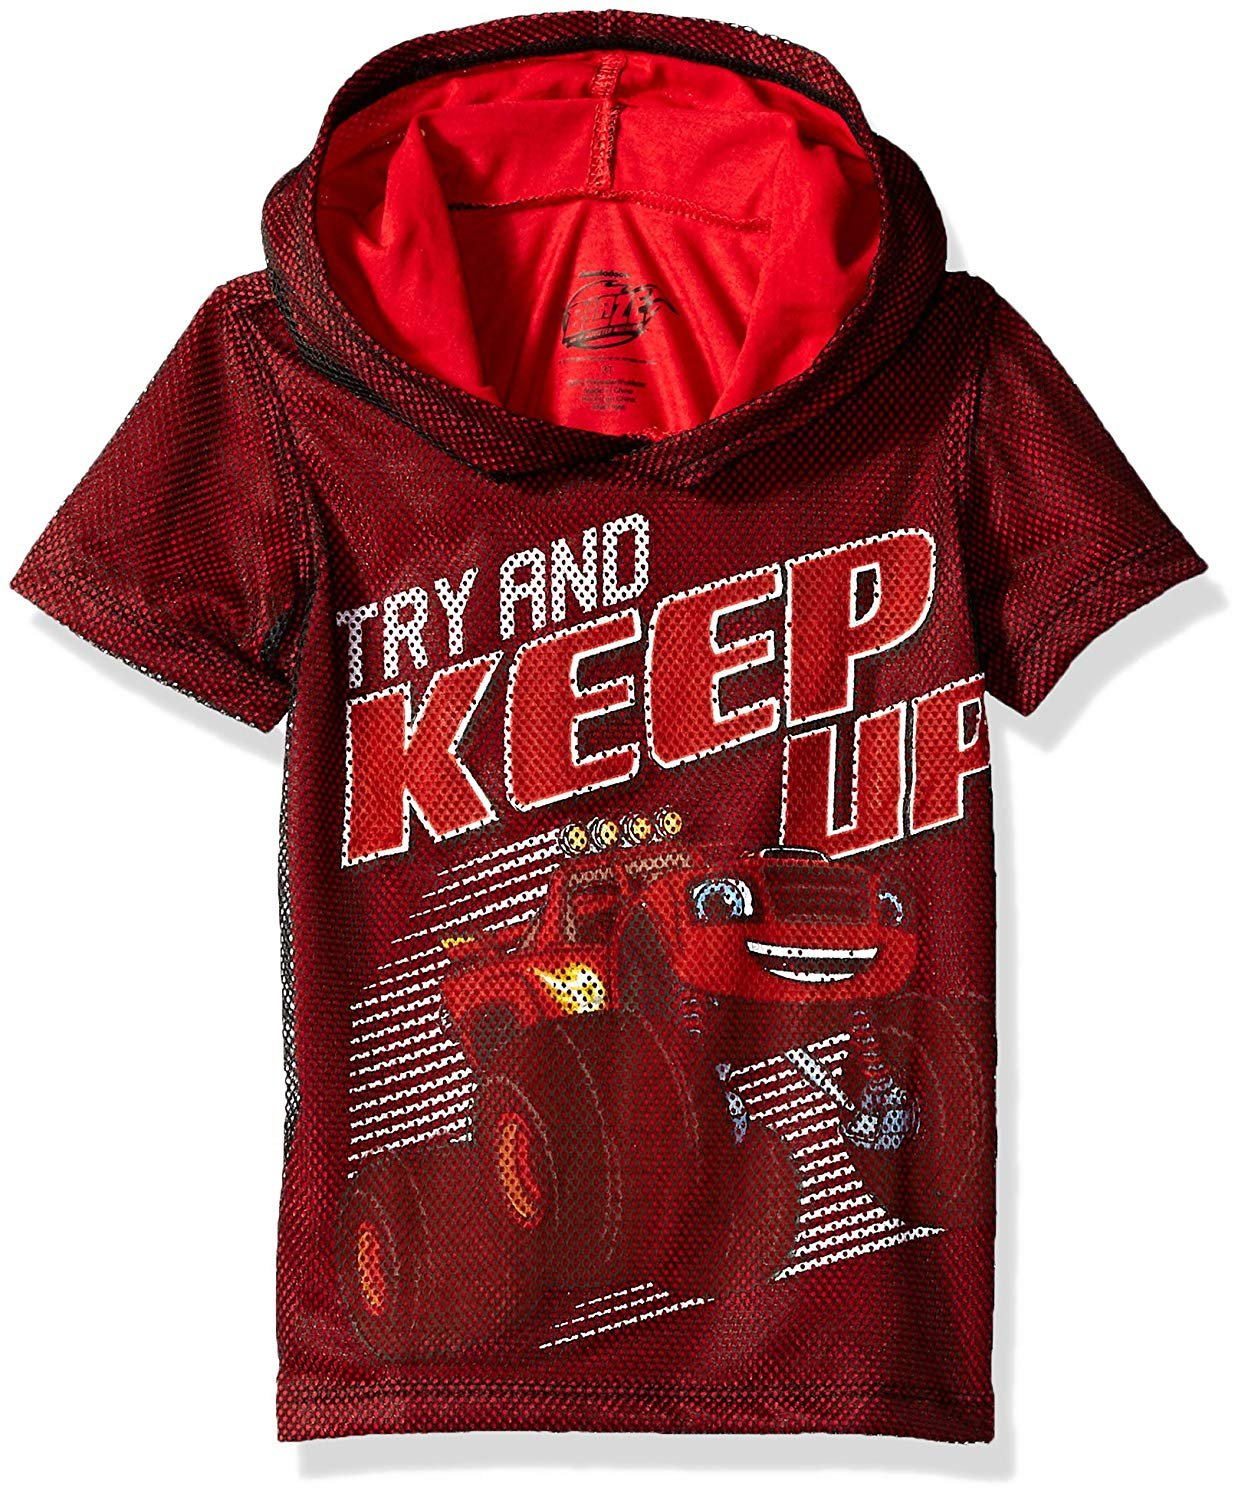 Nickelodeon Boys' Toddler Blaze and The Monster Machines Hooded T-Shirt, red, 3T